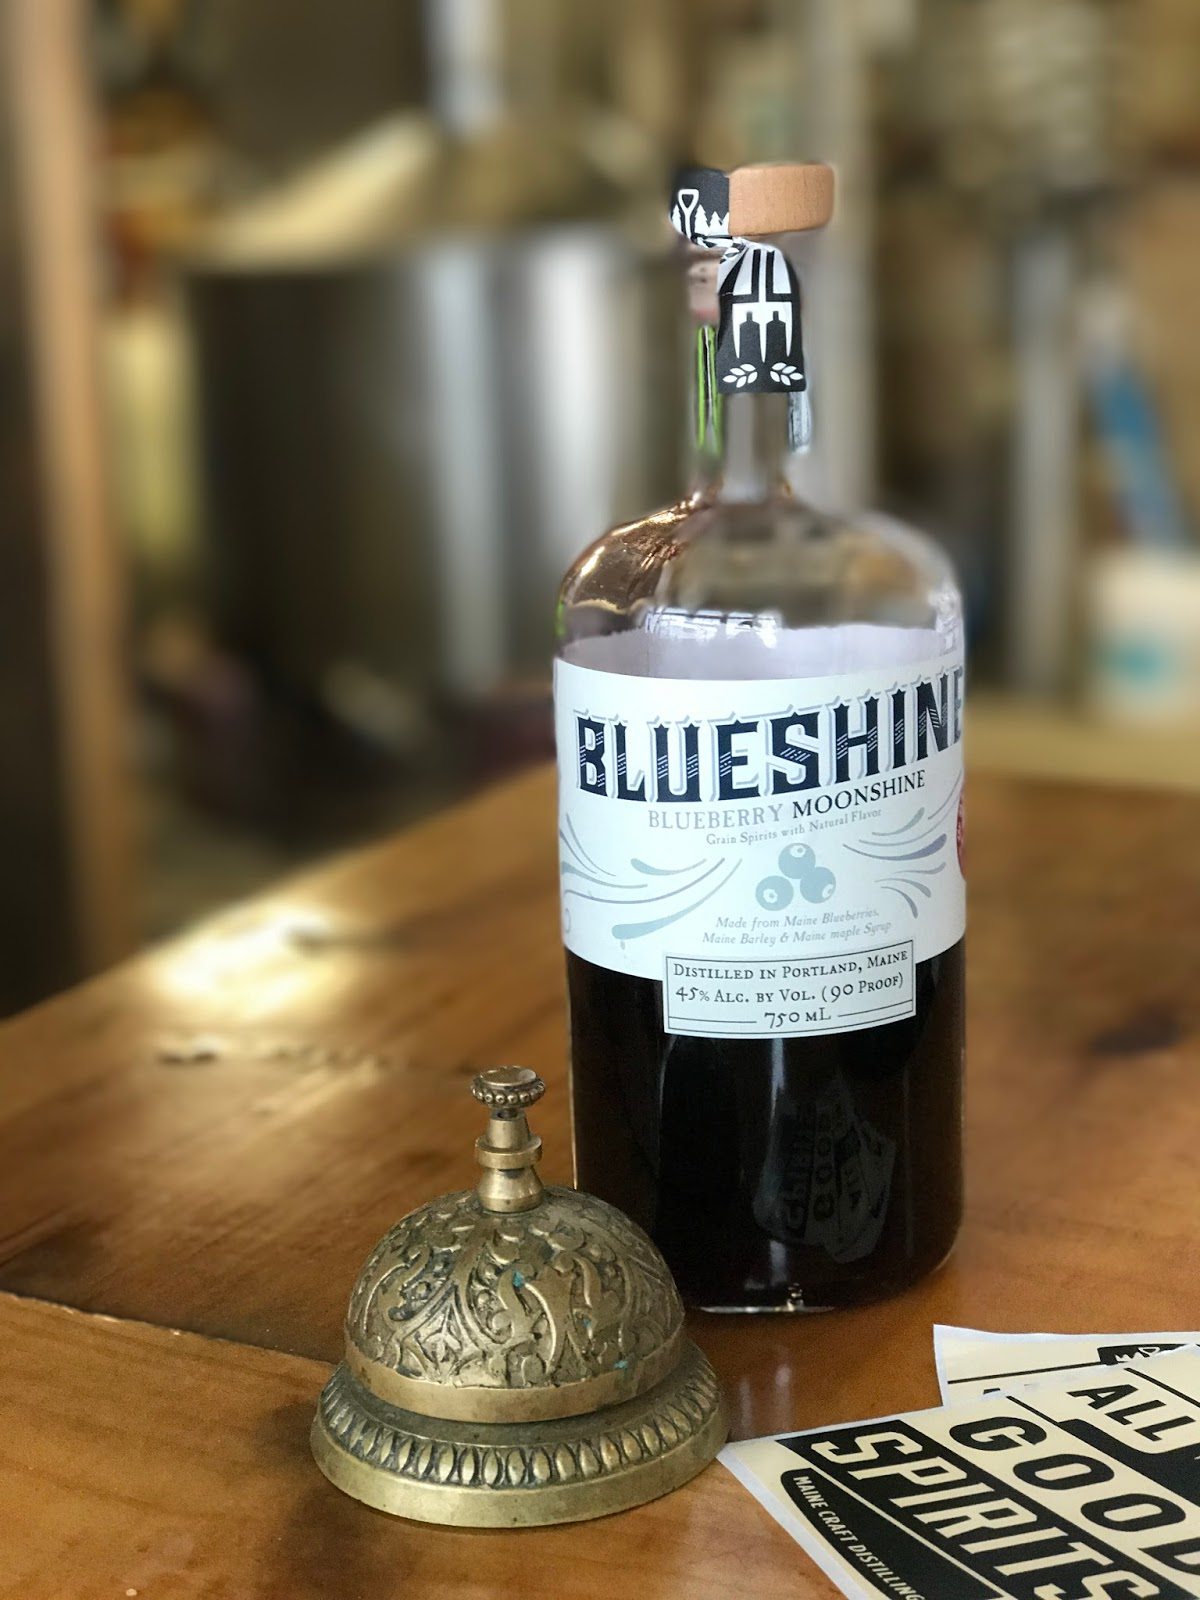 where to go in portland maine, distilleries in portland maine, blueberry flavored drinks